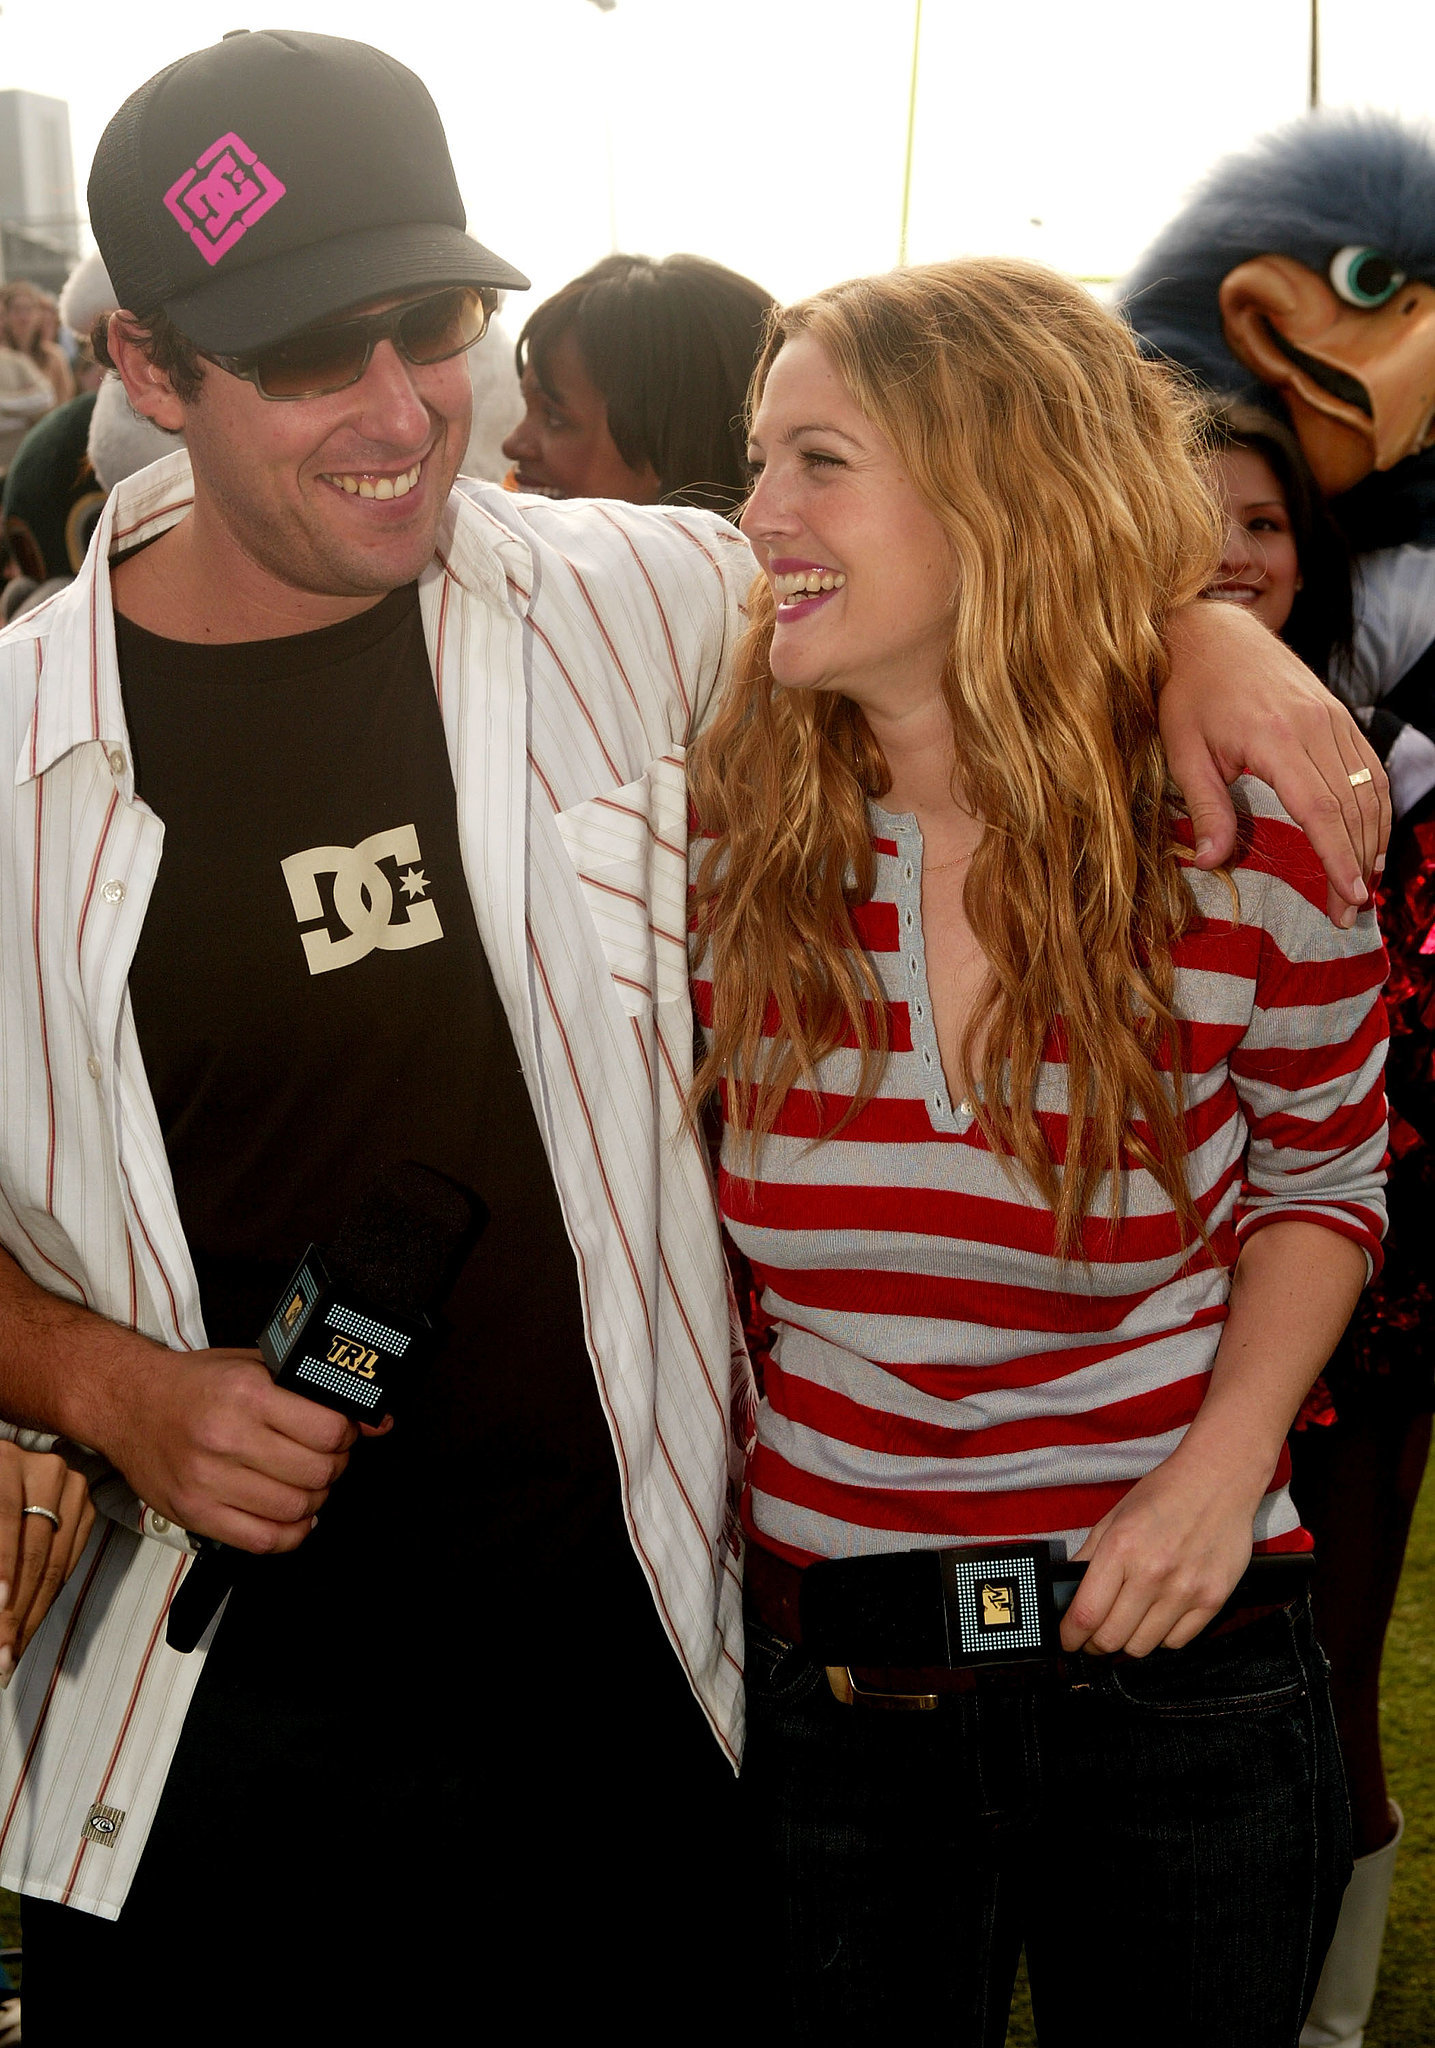 Adam Sandler and Drew Barrymore shared a laugh in Houston at MTV's TRL at Super Bowl XXXVIII in 2004.